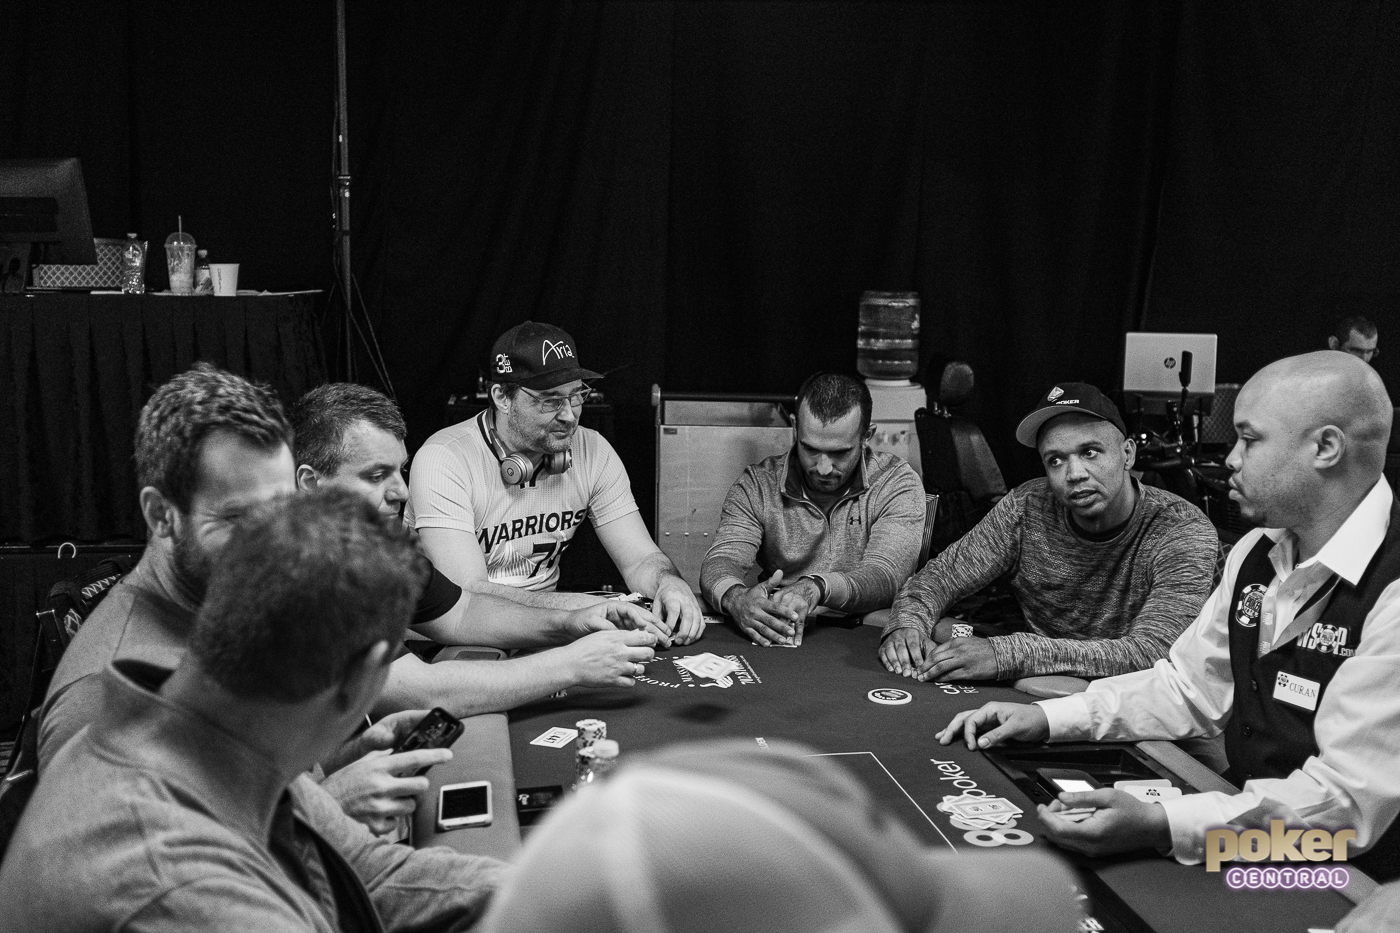 Phil Ivey's table in the $10,000 Omaha Eight-or-Better Championship featuring Phil Hellmuth.